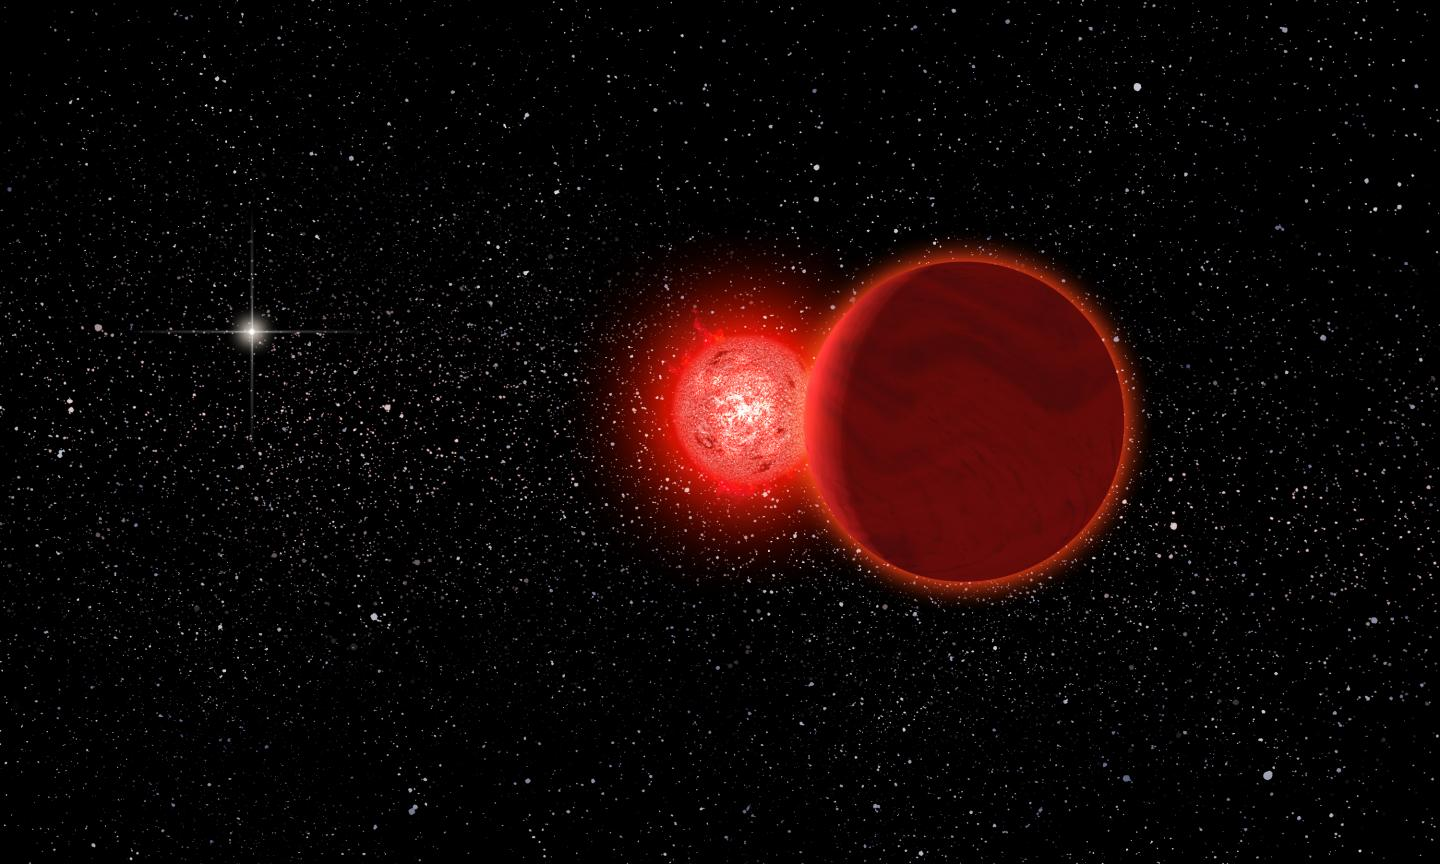 A red star visited our solar system 70000 years ago